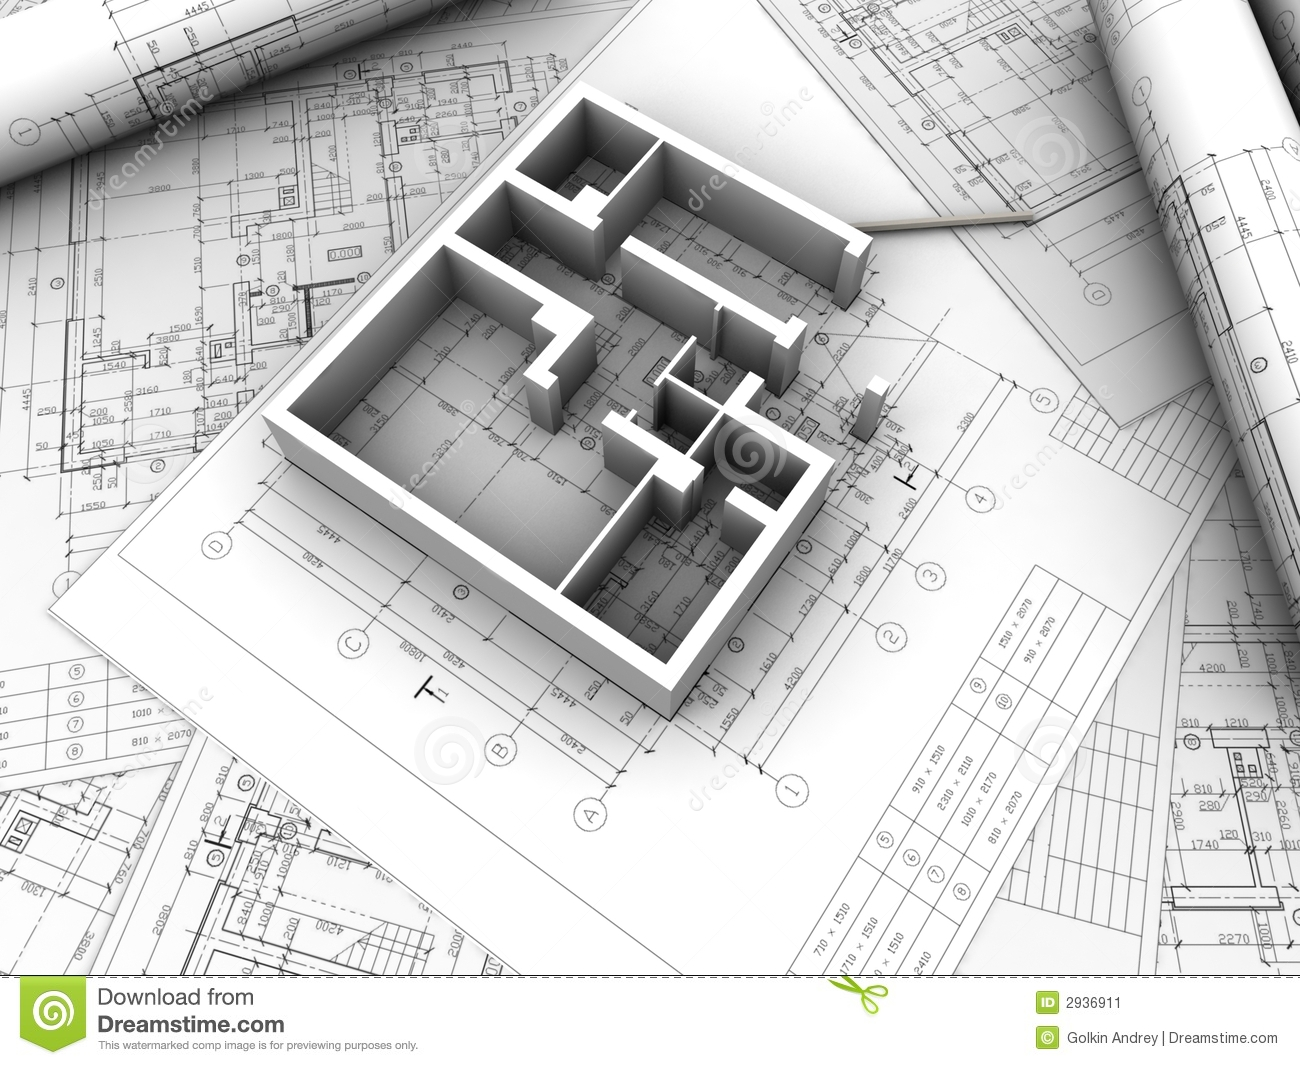 plan drawing - 3d Plan Drawing